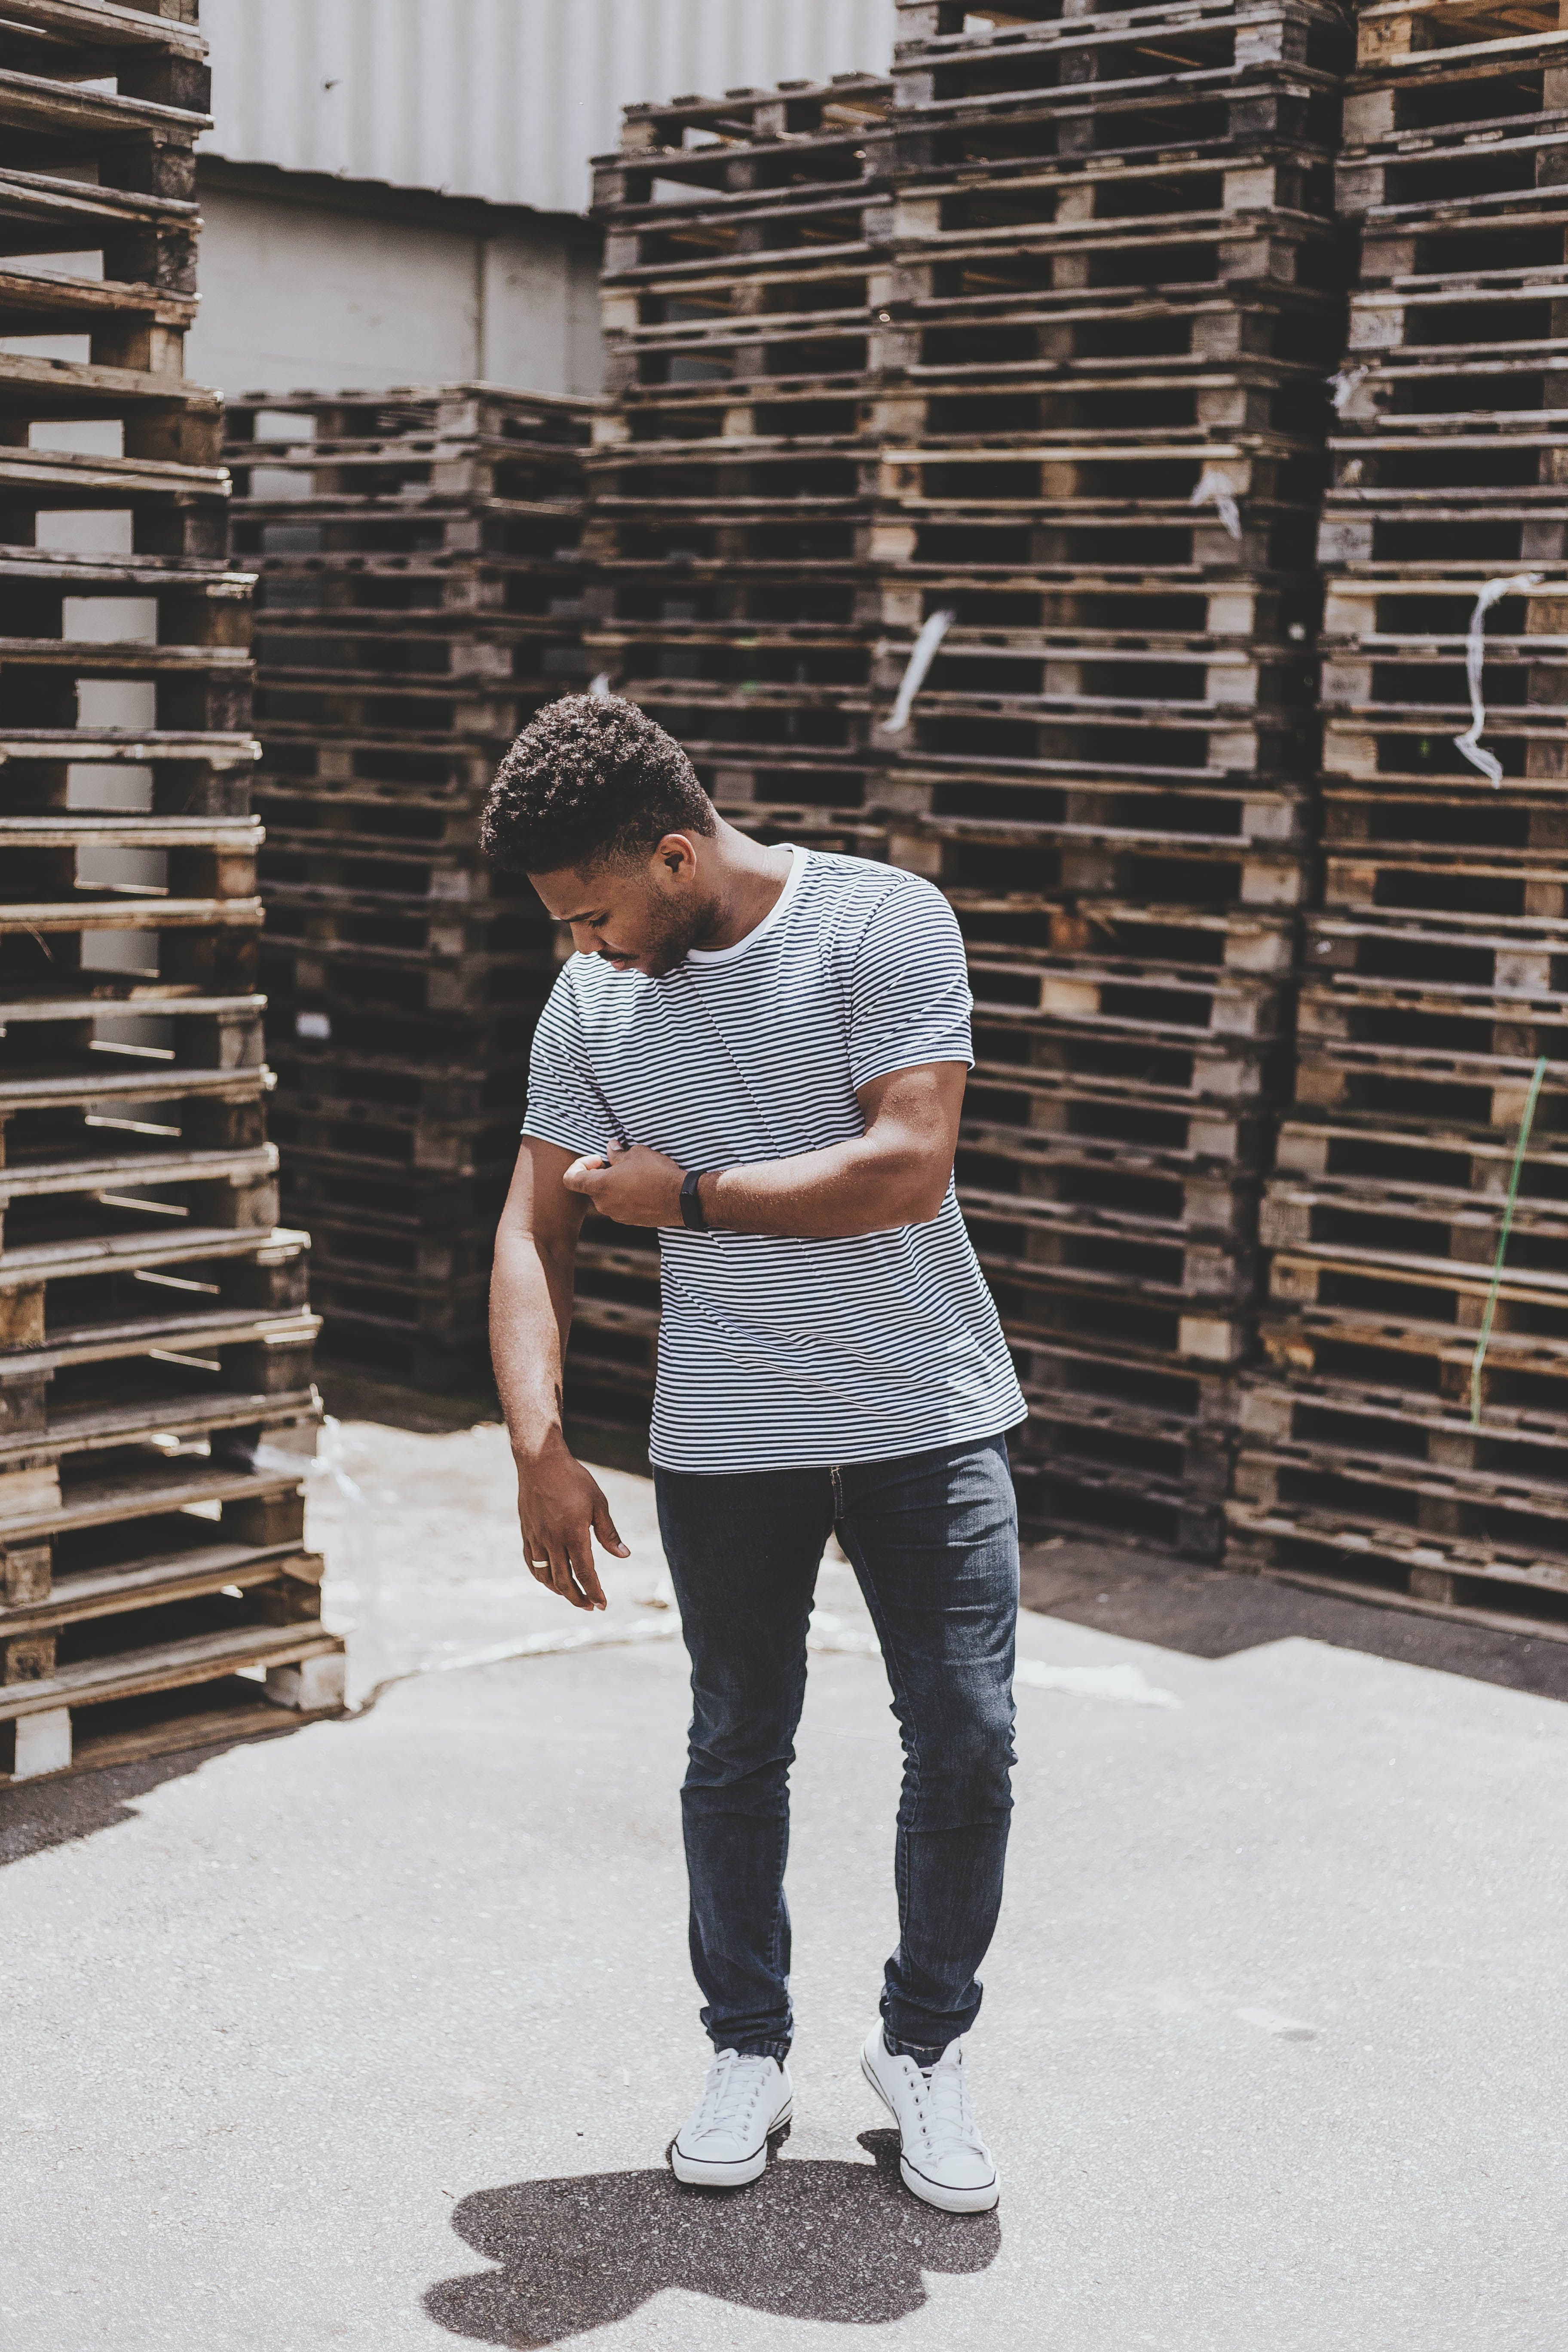 Man Standing Near Stack of Pallets